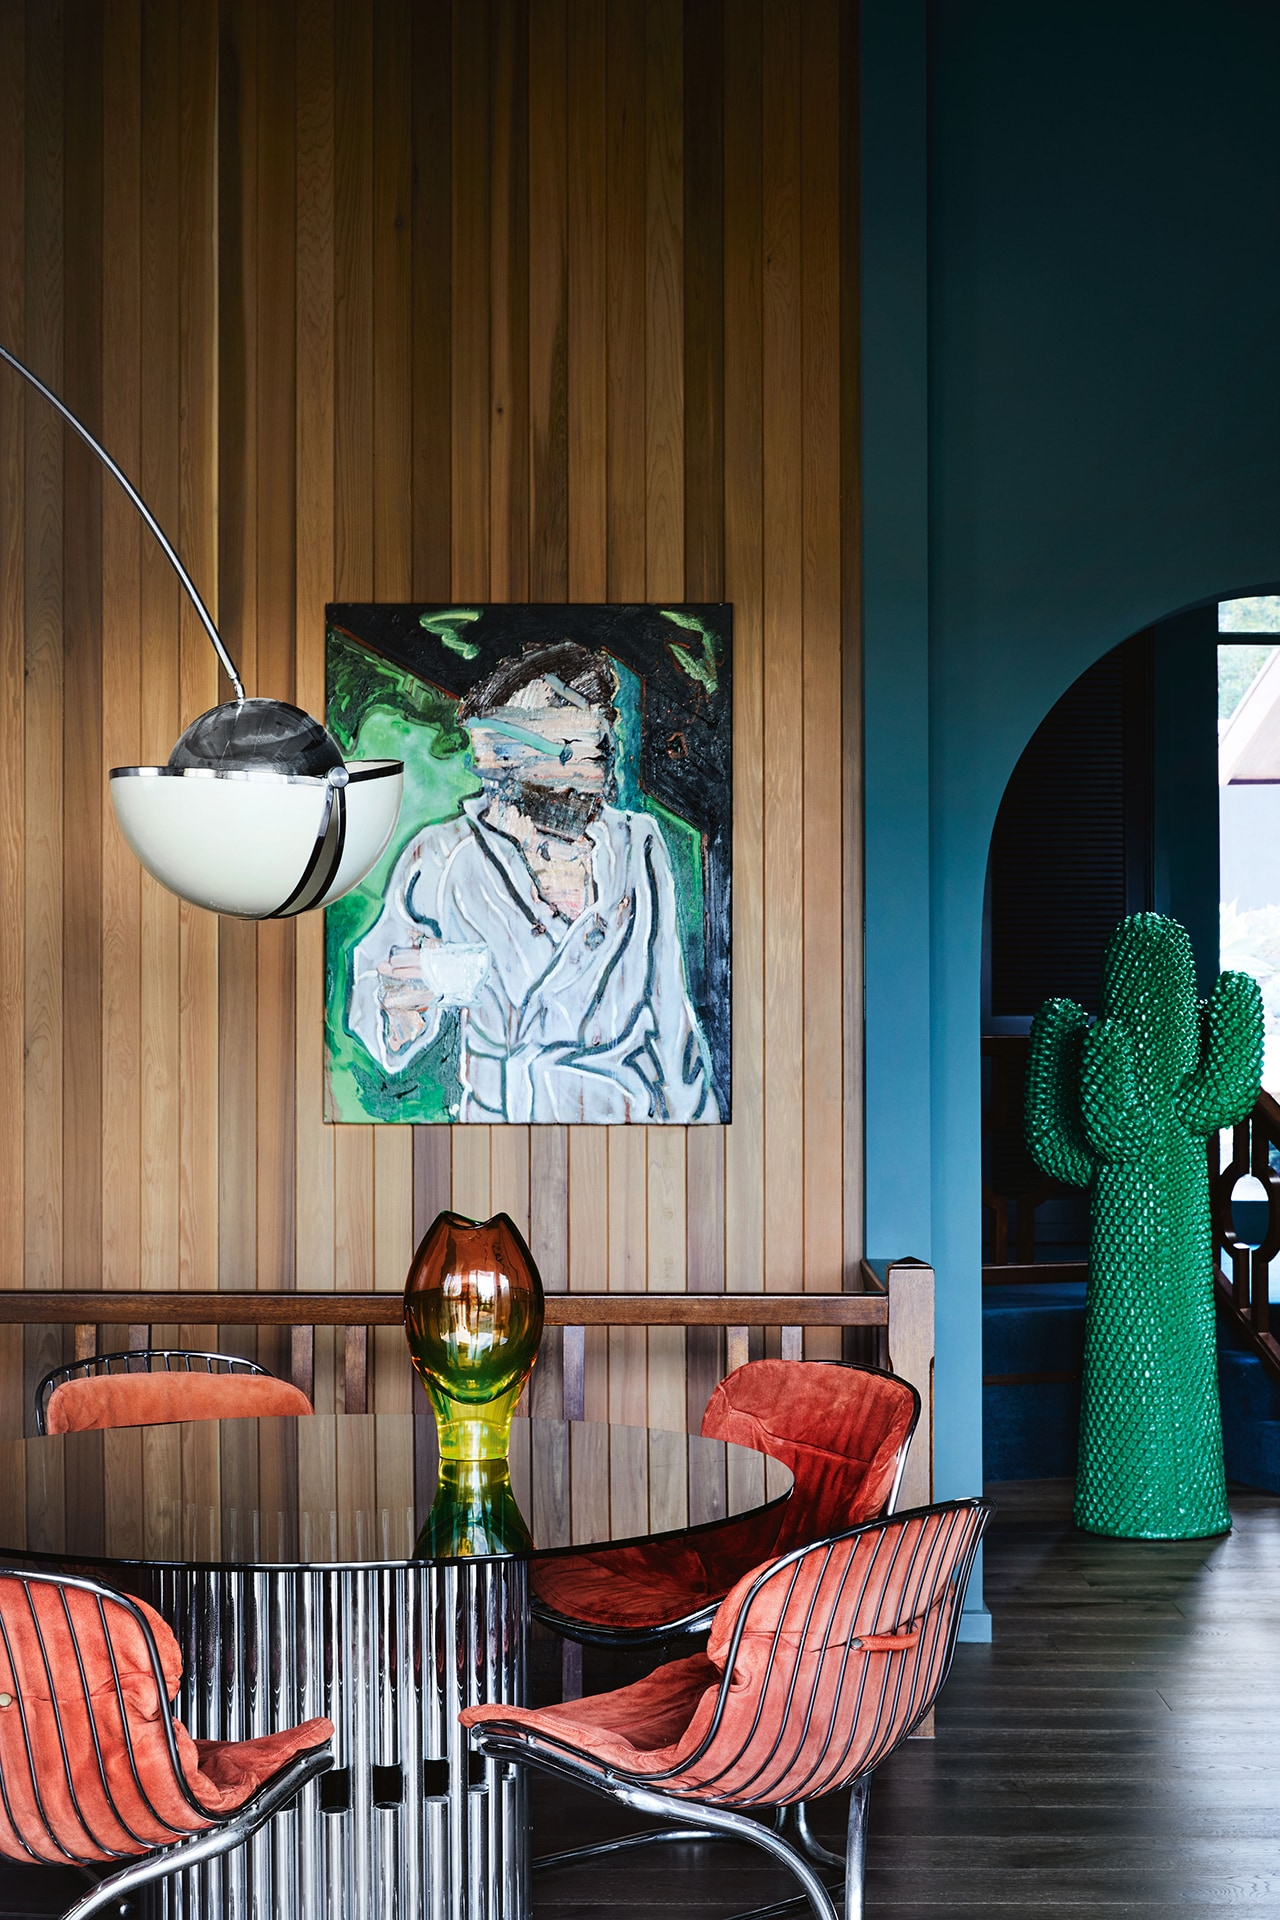 House tour: an ode to 1970s chic and feng shui principles